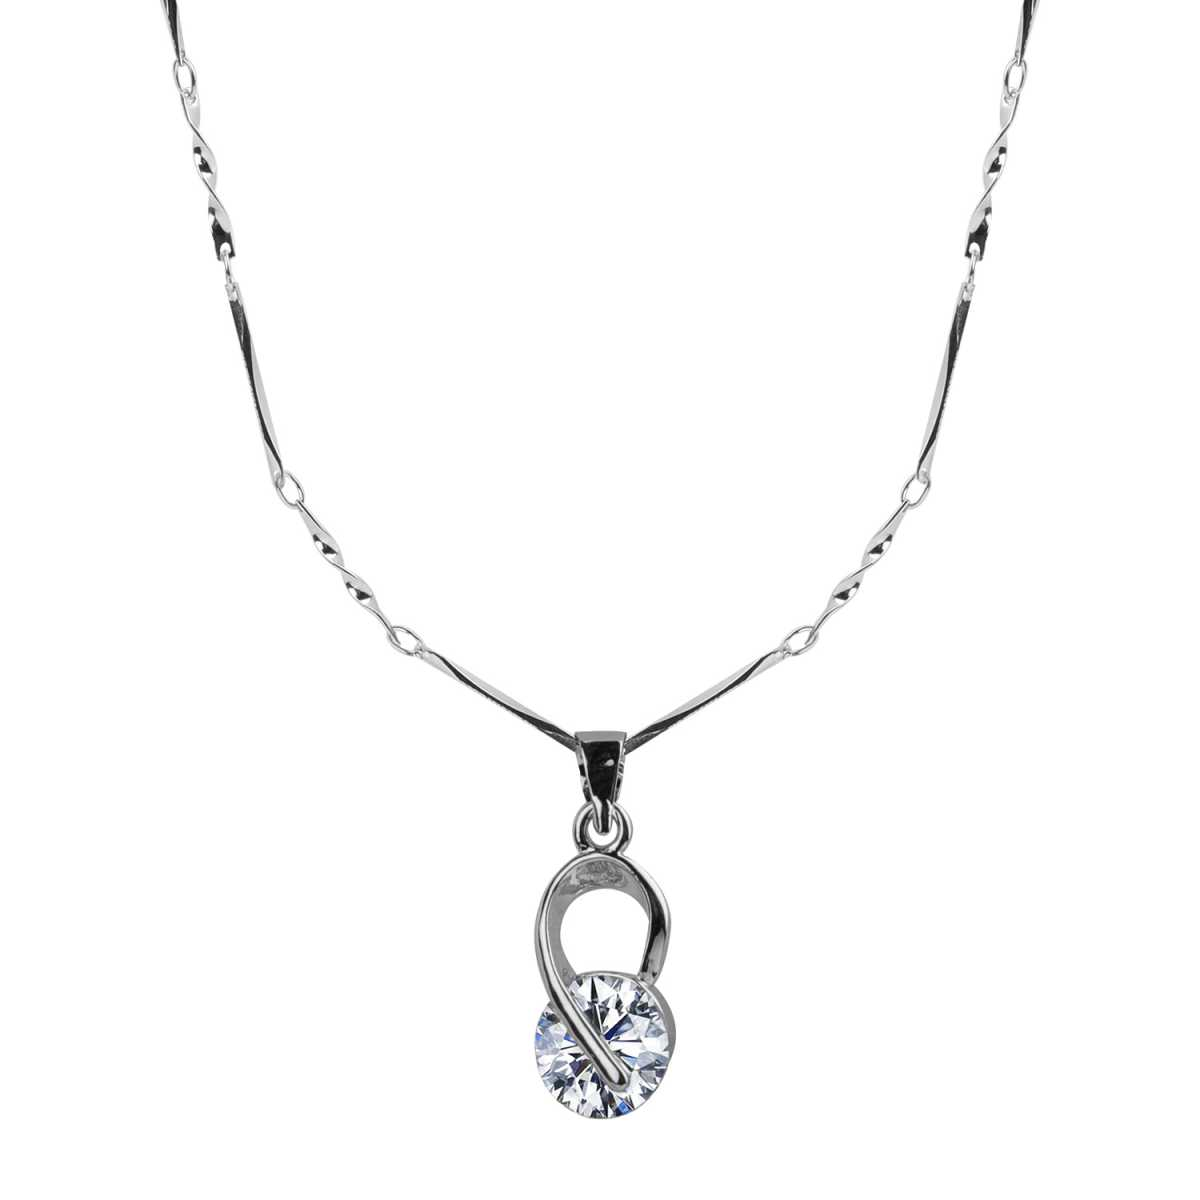 Silver Plated Chain With Elegant Shape Solitaire Diamond Pendant For Women